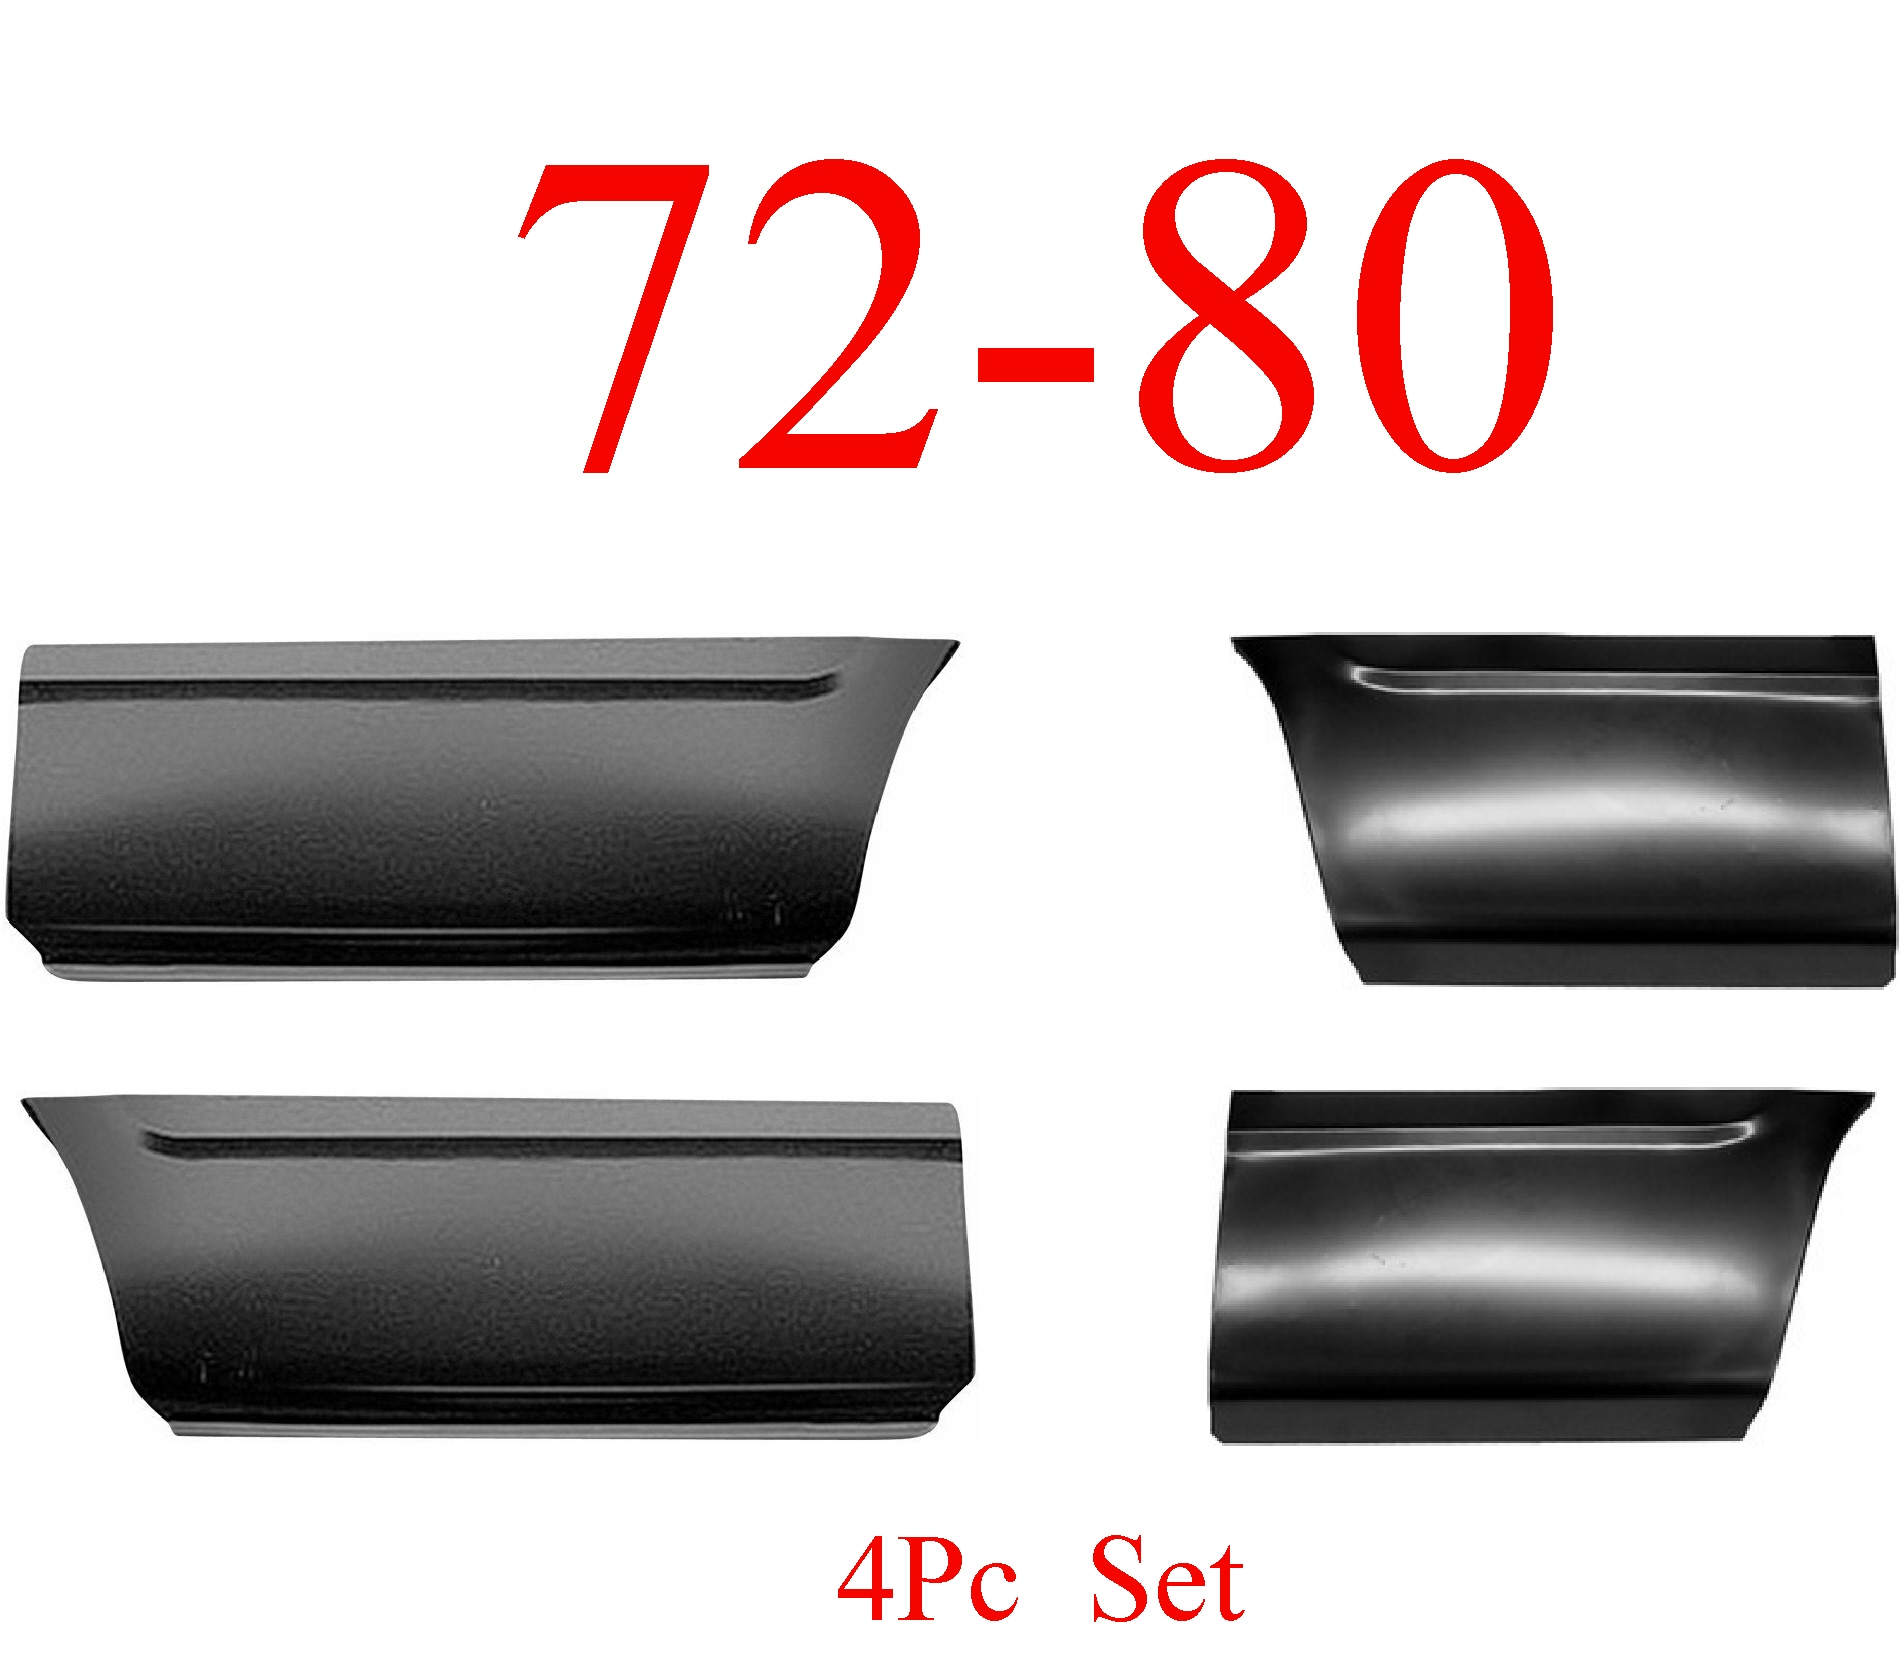 72-80 Dodge 4Pc Front & Rear Lower Bed Panel Set 8'